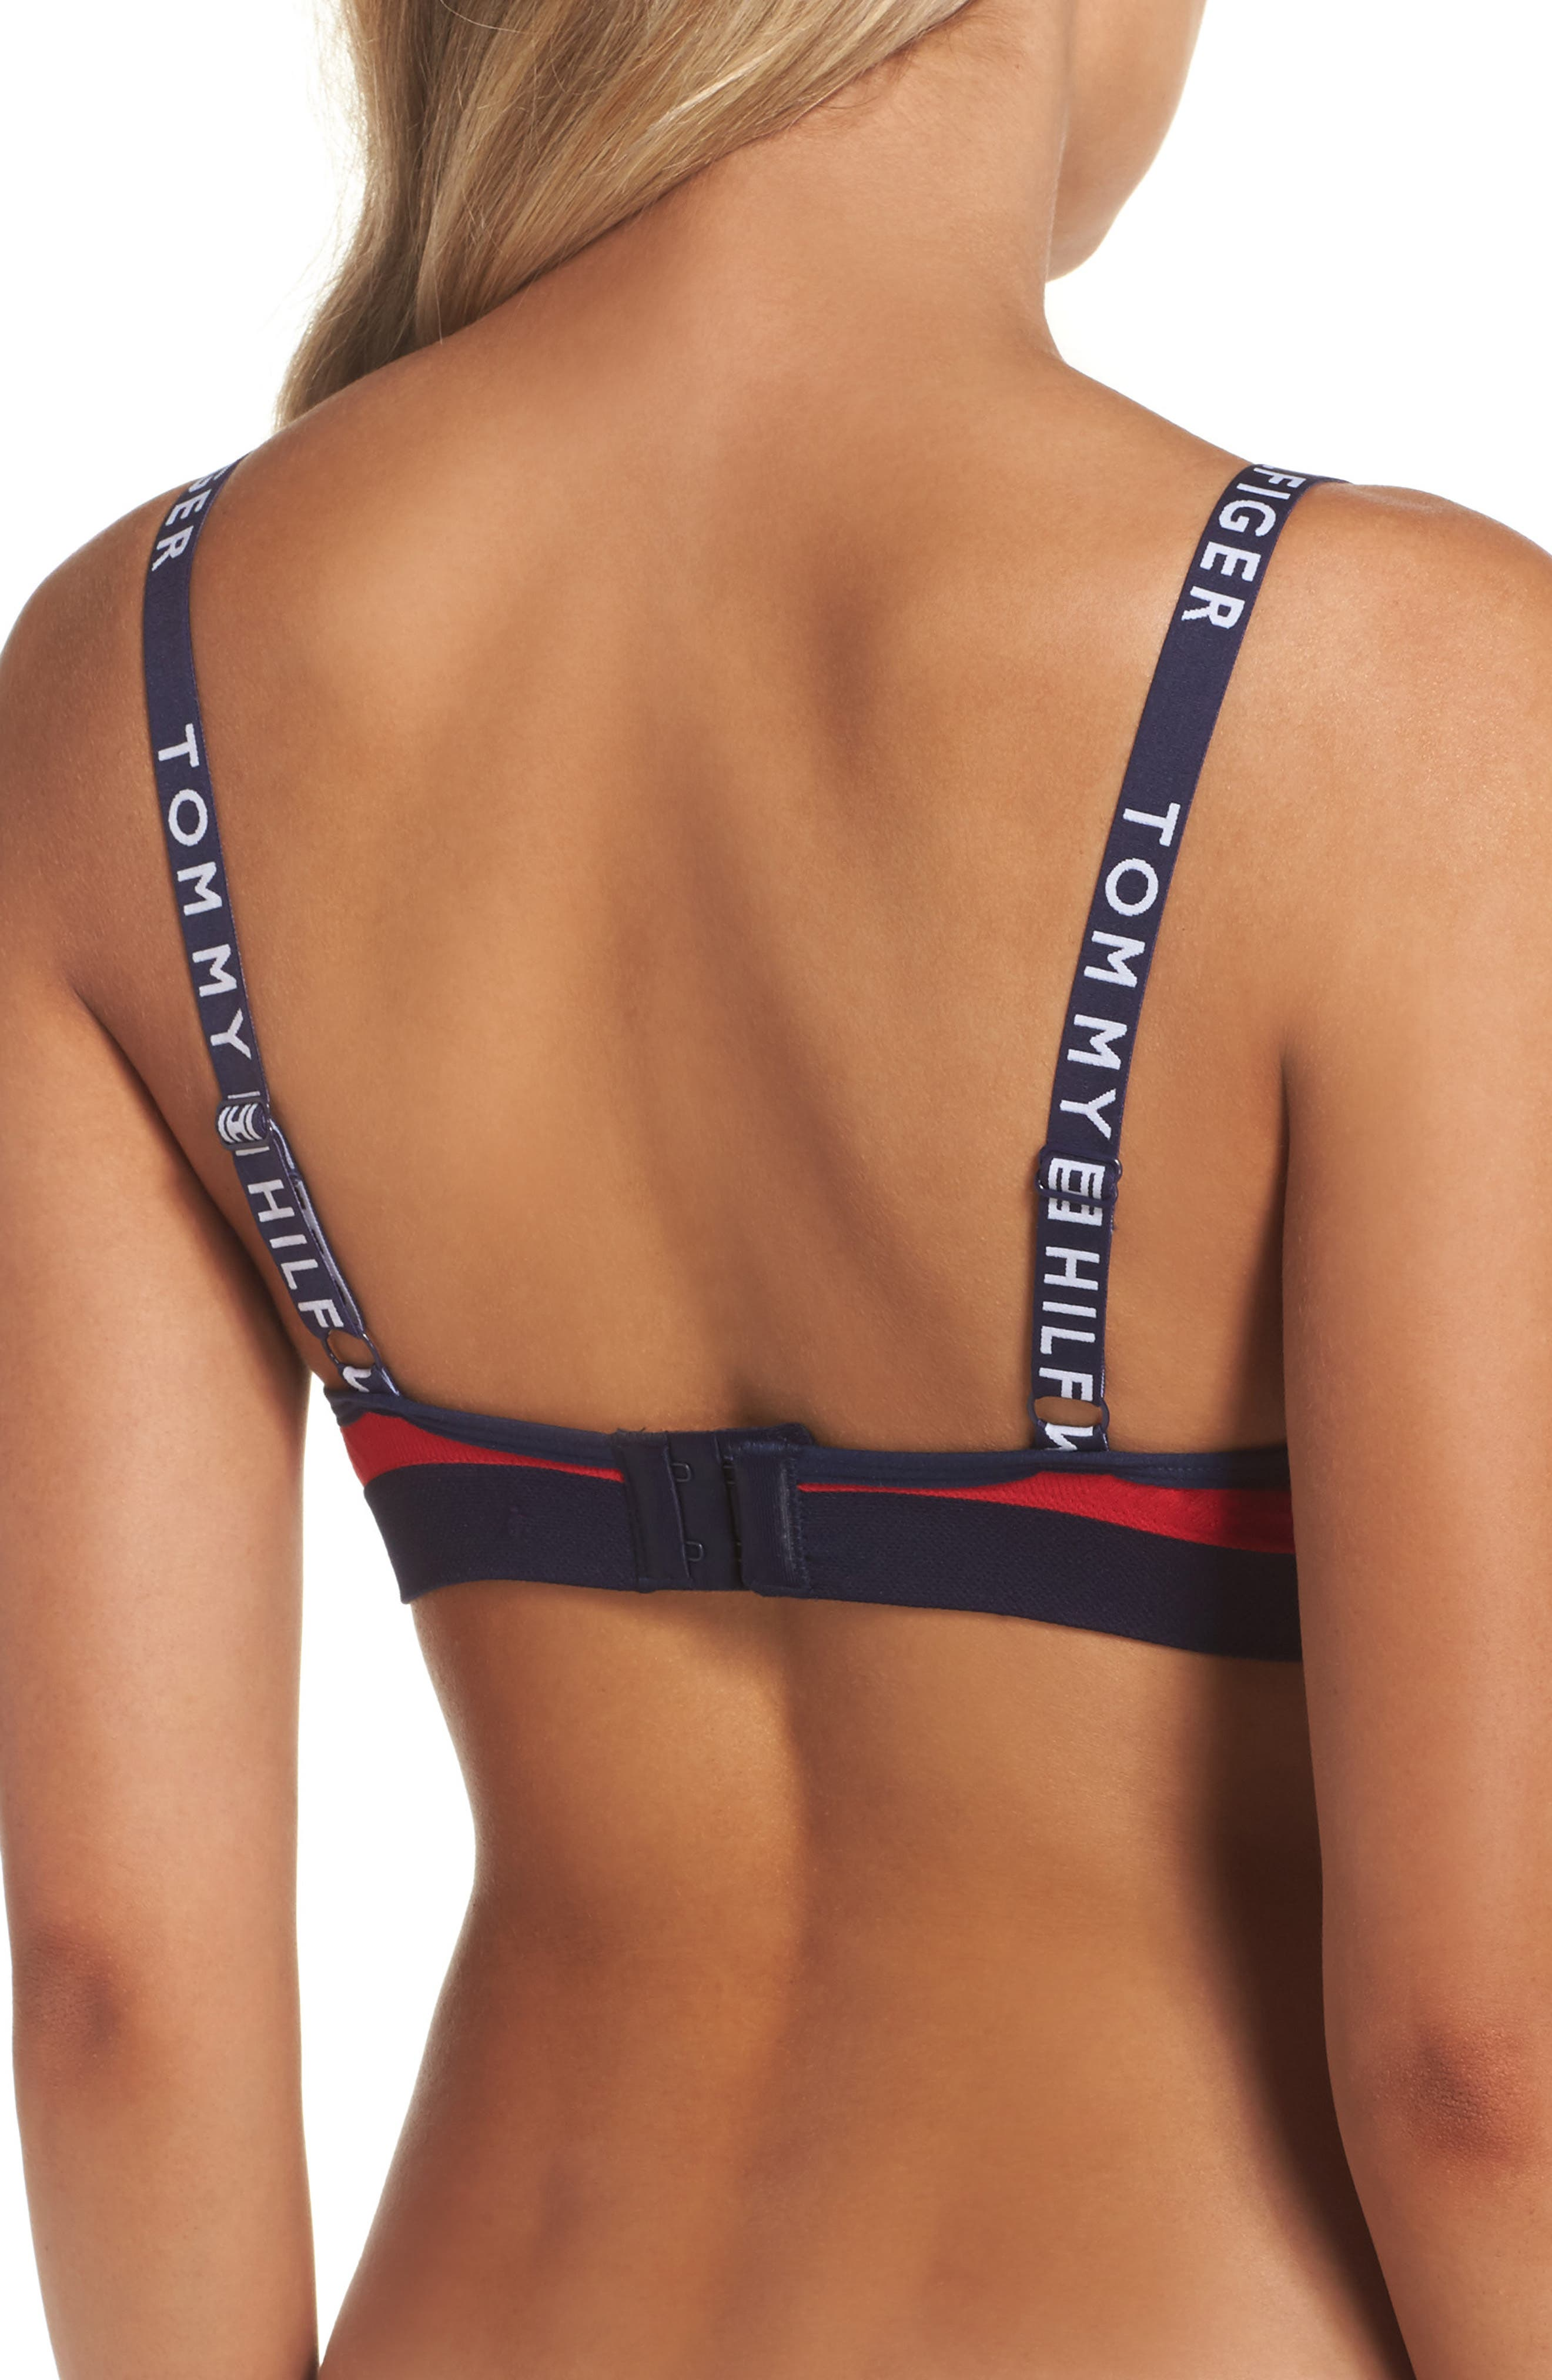 Alternate Image 2  - Tommy Hilfiger Seamless Bralette